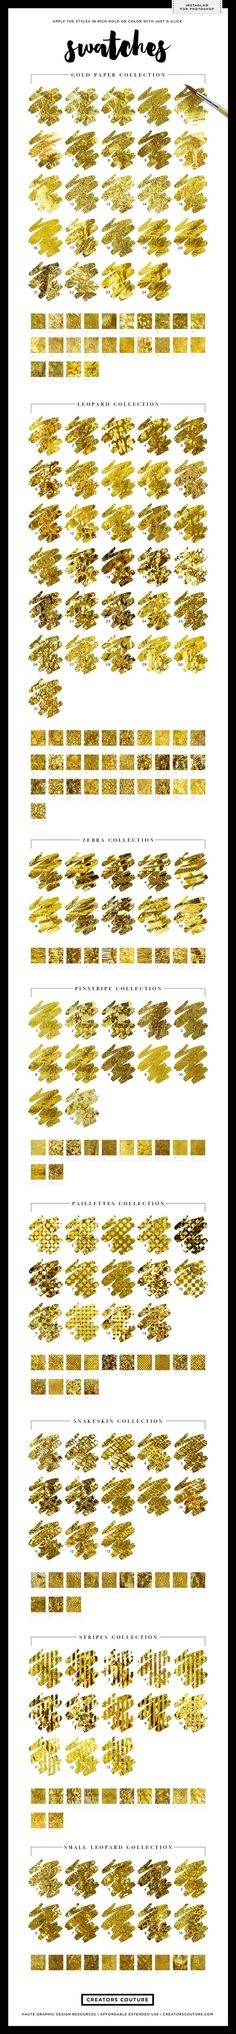 Gold Foil Textures InstaGlam Styles by Creators Couture on Creative Market http://crtv.mk/q0MCZ. Glamorous 1-click styles for Photoshop or Illustrator. Add realistic gold foil effects to your hand lettering and watercolor illustrations, wedding invitations, holiday designs, etsy prints, printables and more! For graphic design and illustration.